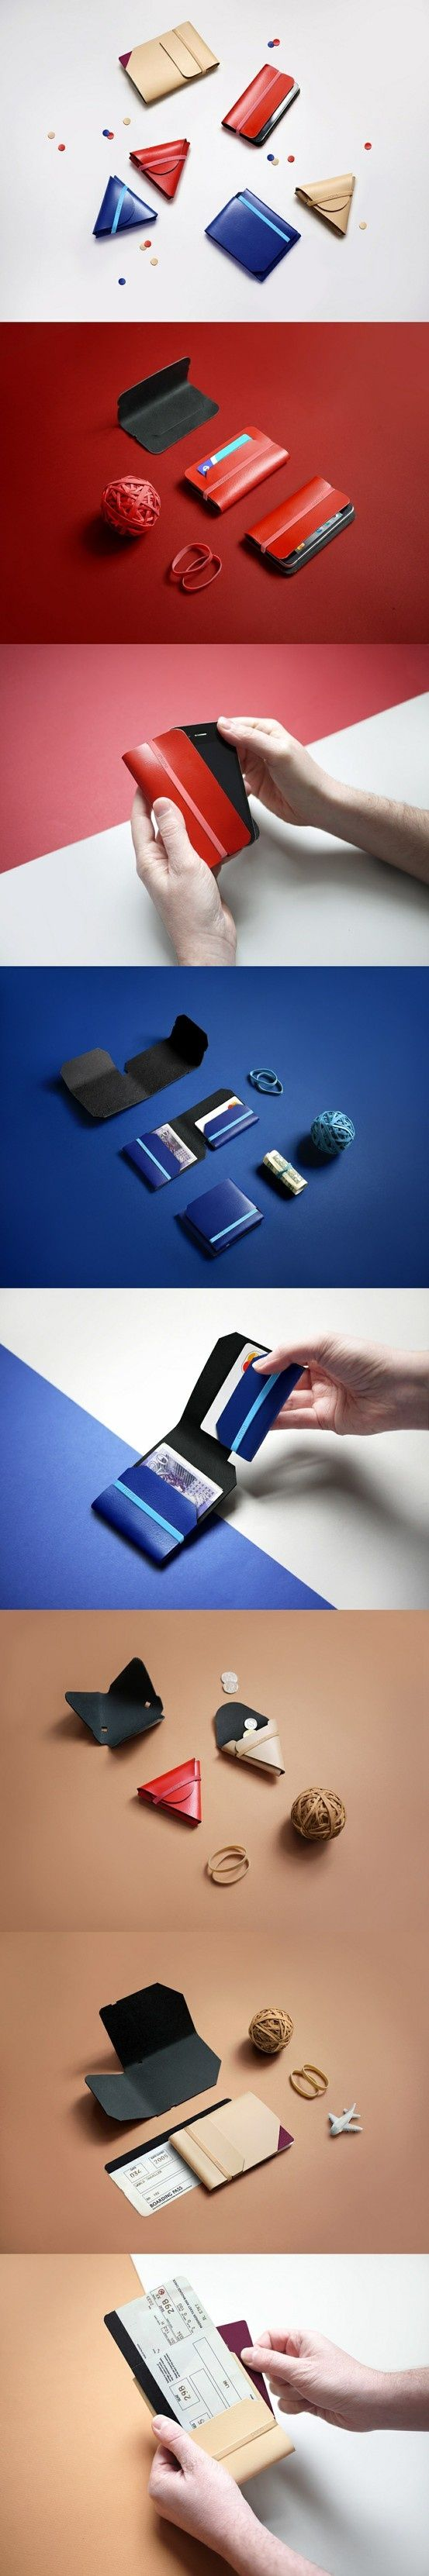 Nothing Fancy is a collection of non-stitched minimalist solutions for the wallet, re-imagined for the contemporary lifestyle. Using only a foldable leather hide template and rubber bands and eliminating everything else (stitches, snaps, zippers, etc.), Chieh delivers a wallet, a coin case, an iPhone holder and a passport holder within the same principles.